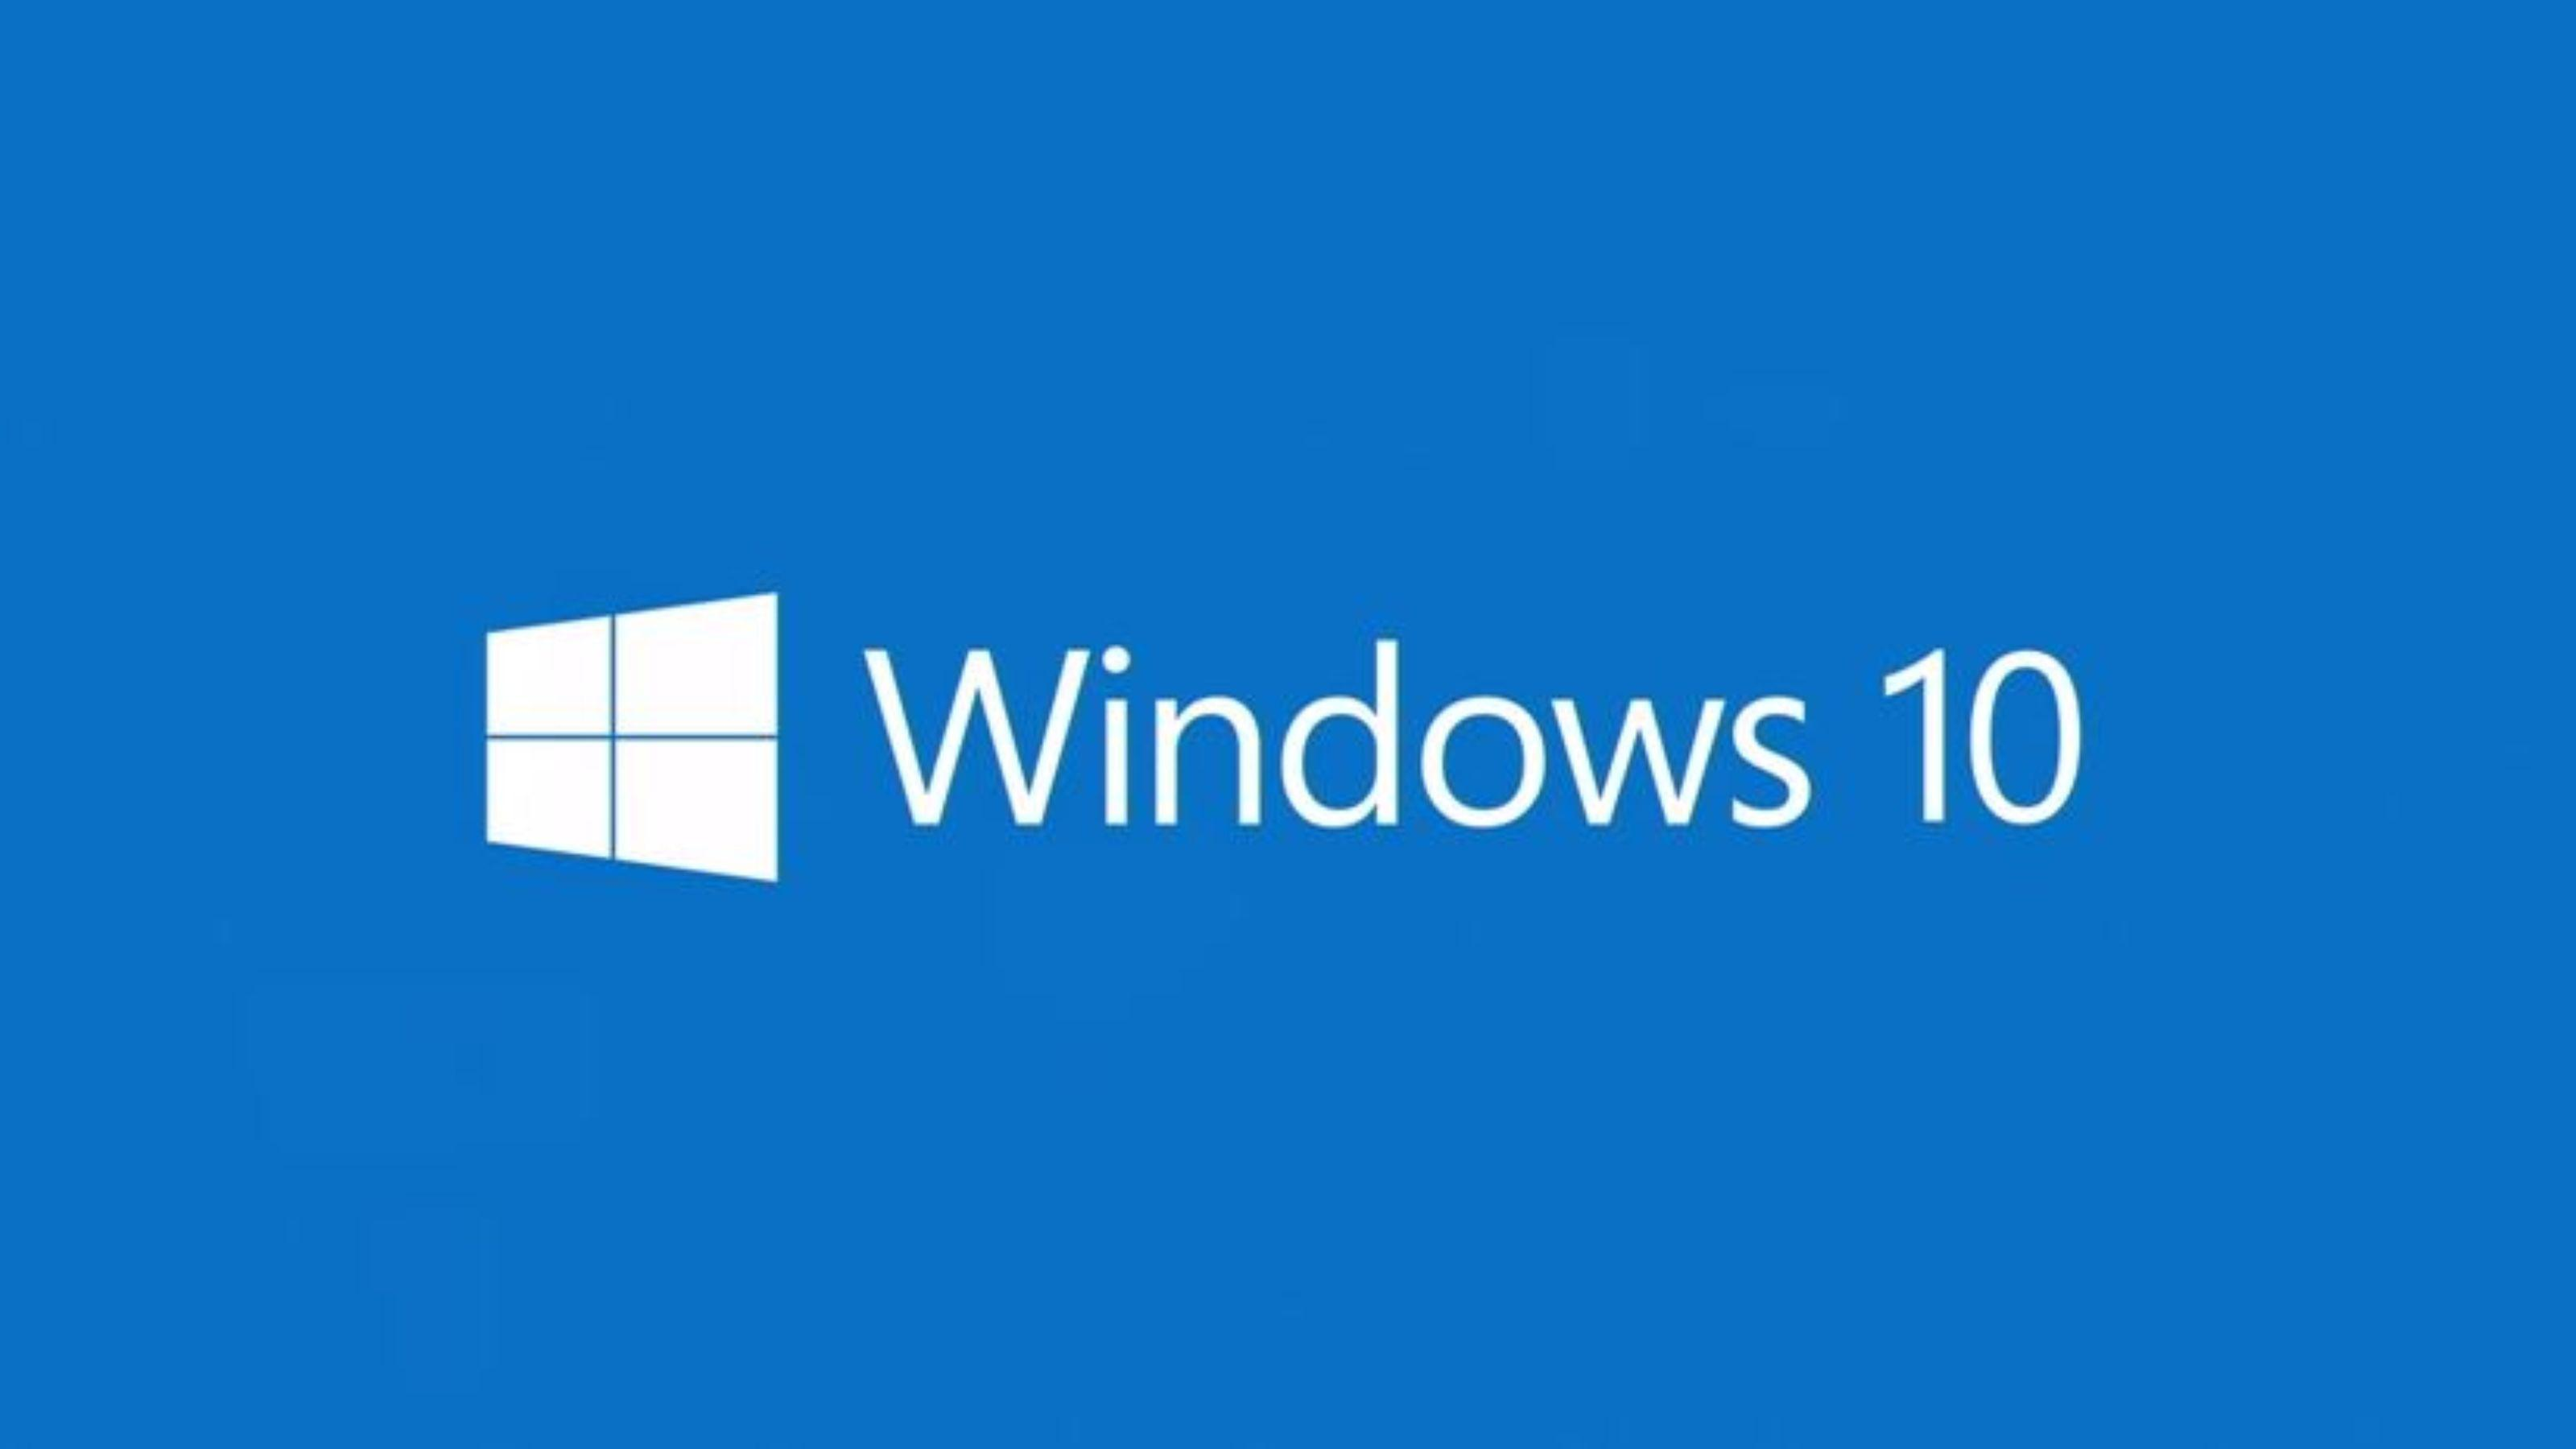 How to upgrade Windows 10 for free?